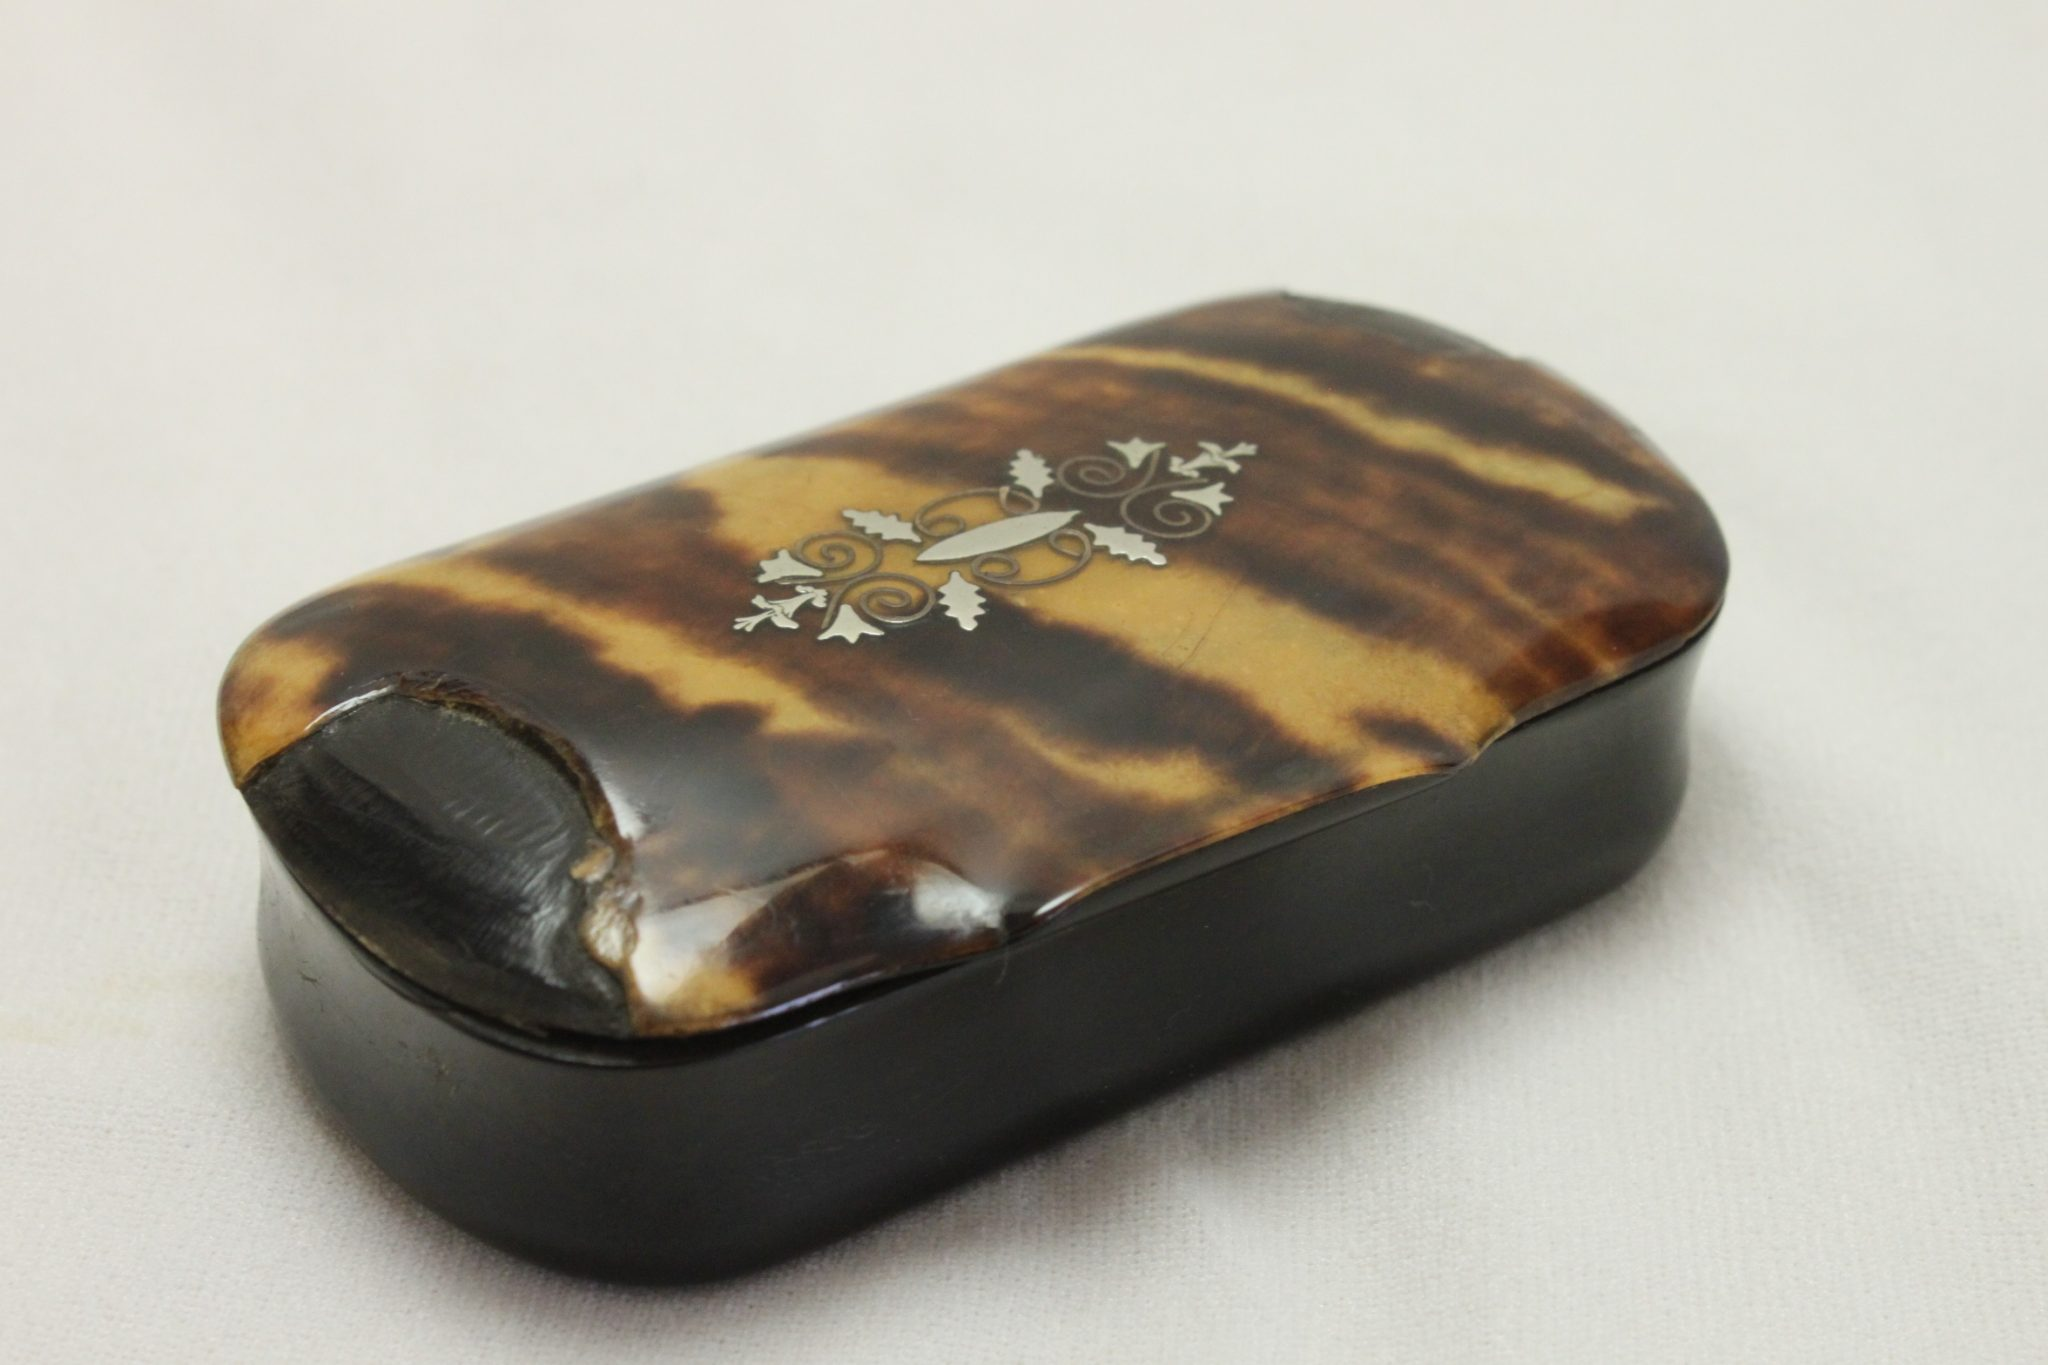 Pressed horn and tortoiseshell snuff box